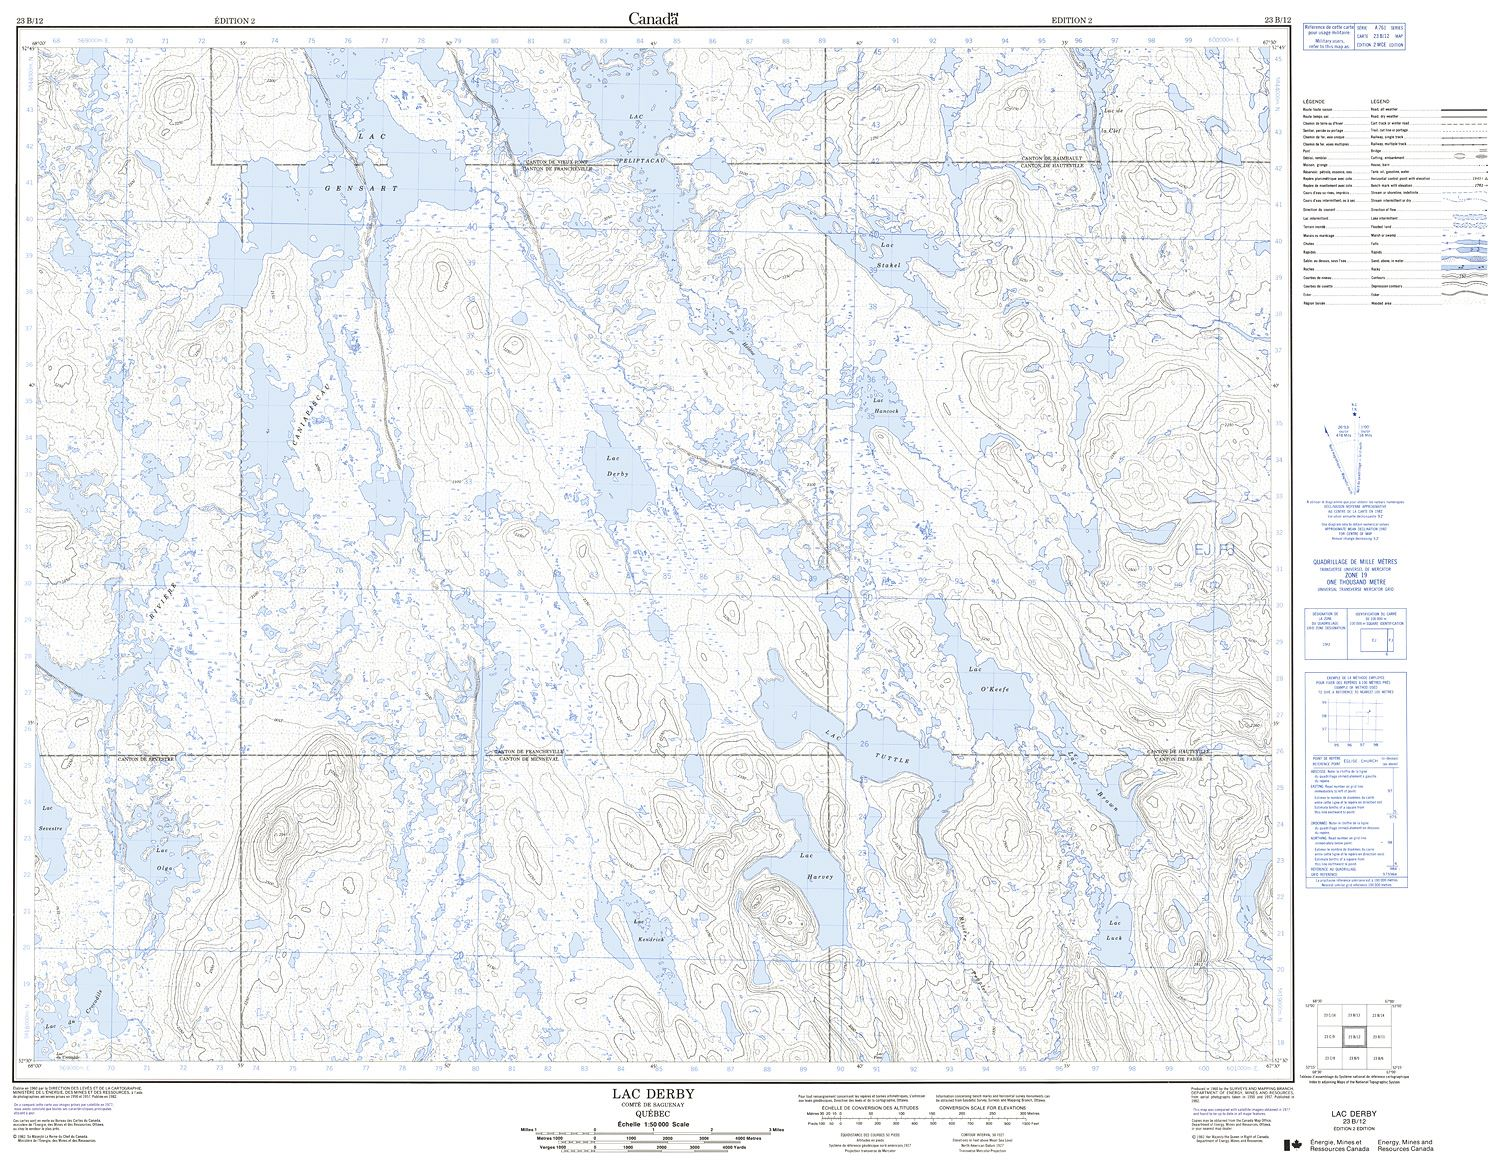 023B12 - LAC DERBY - Topographic Map